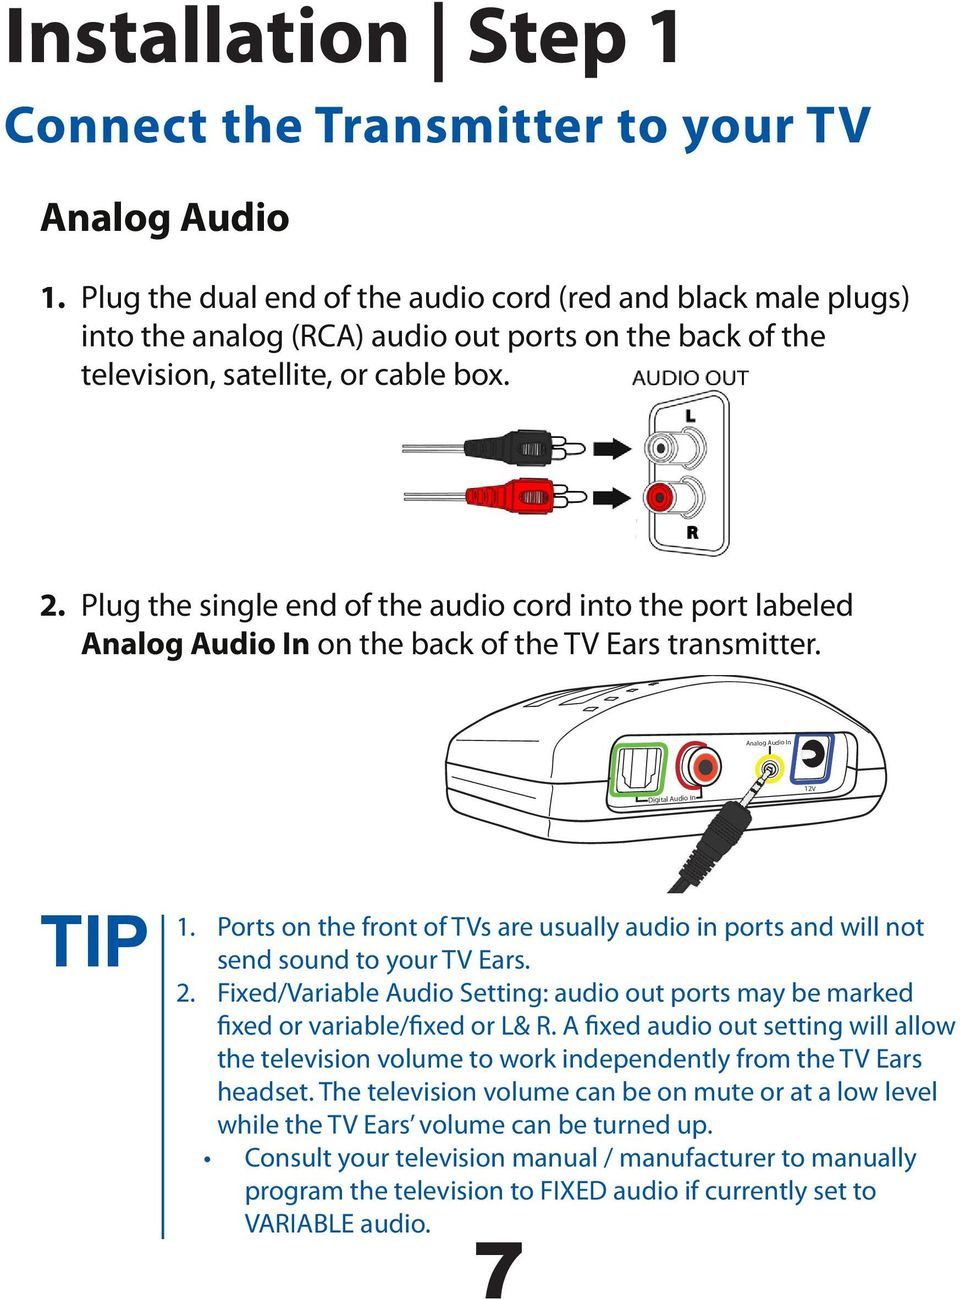 Plug the single end of the audio cord into the port labeled Analog Audio In on the back of the TV Ears transmitter. Analog Audio In Digital Audio In 12V TIP 1.